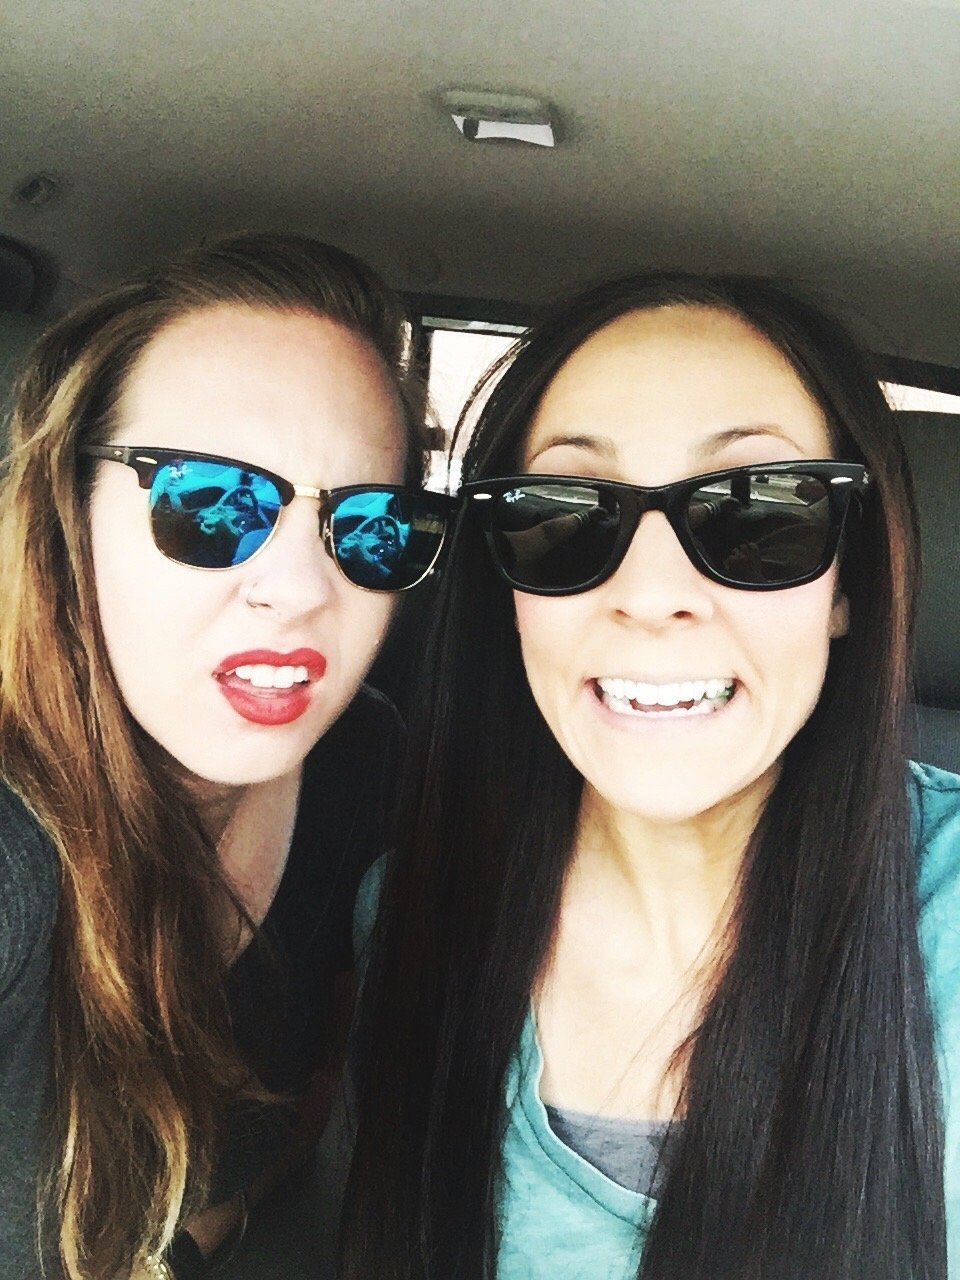 Two girls pose for a selfie in a car